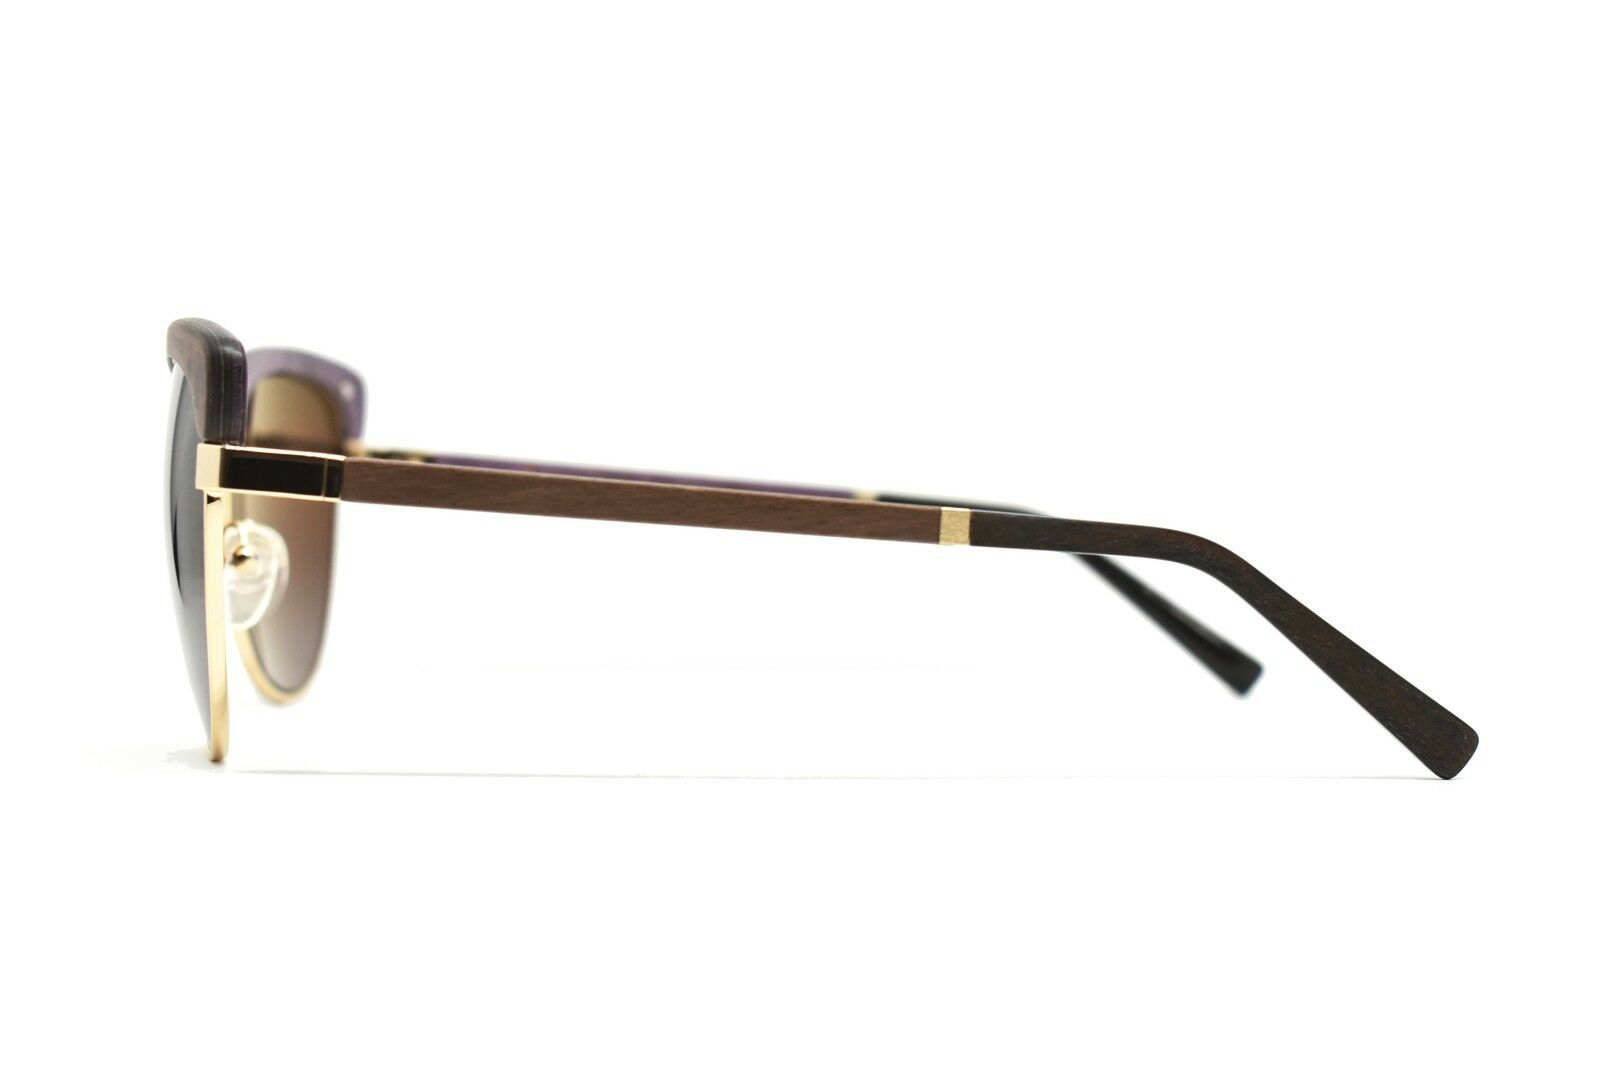 Gold and Wood Sunglasses ALTAIS 03 58-15-130 New Authentic - retail